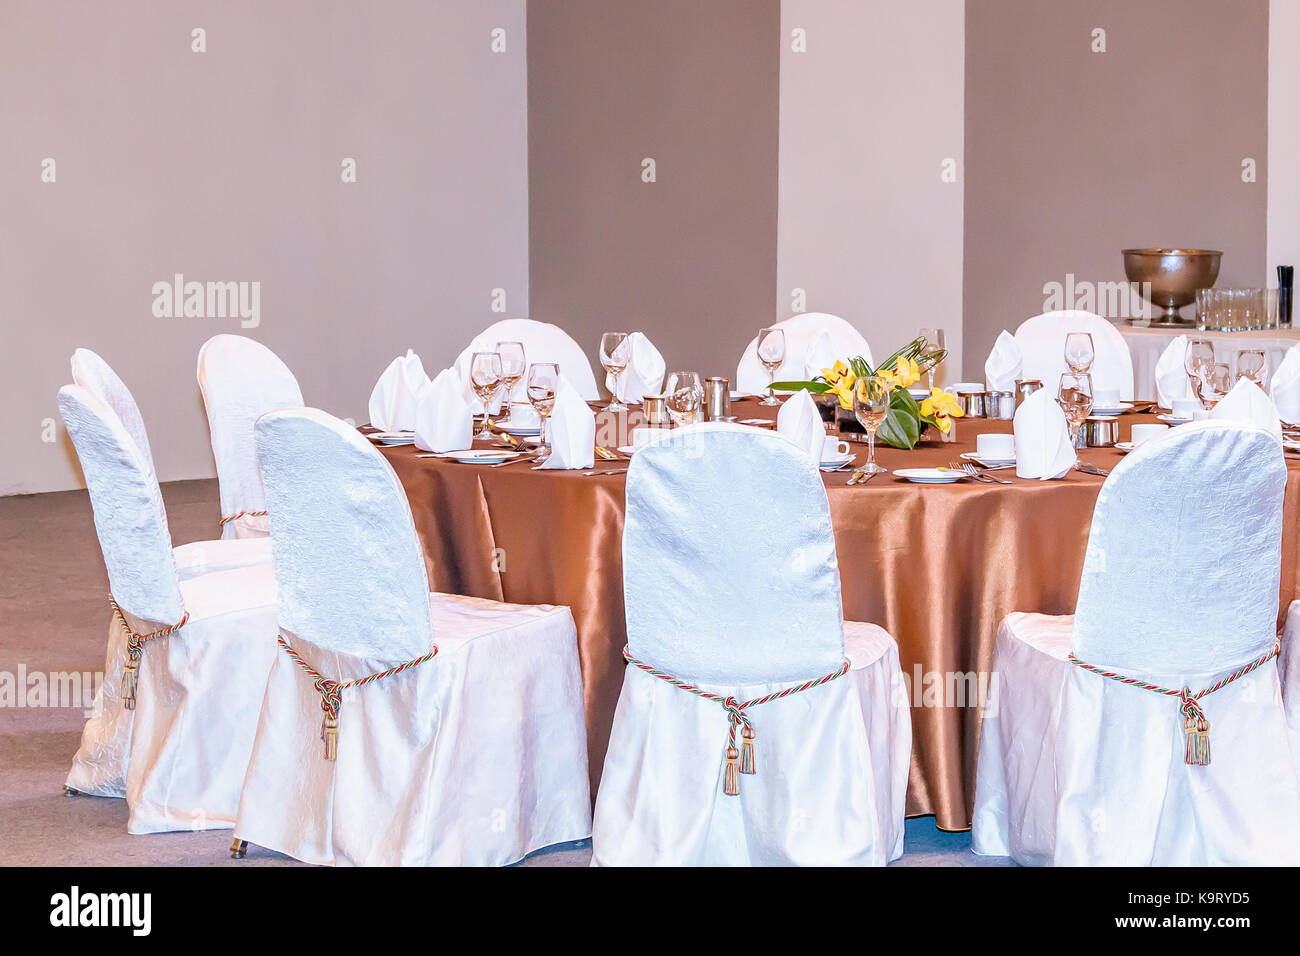 Charmant An Event Dinner Set Up With White Seat Covers And Bronze ...